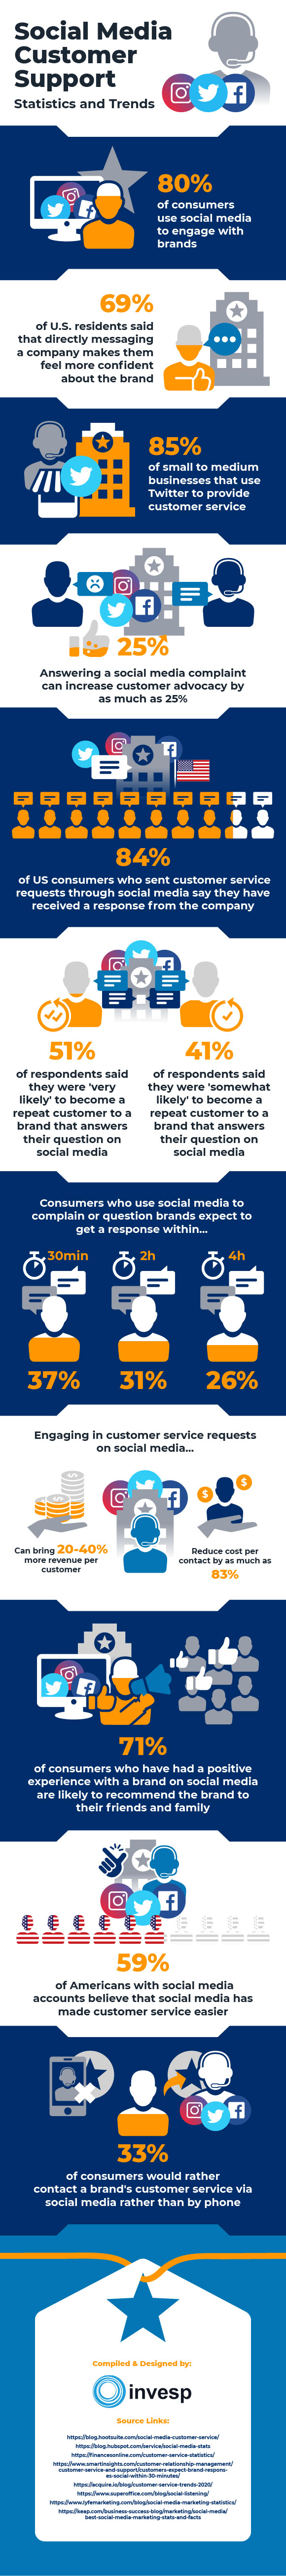 The State of Social media customer support– Statistics and Trends